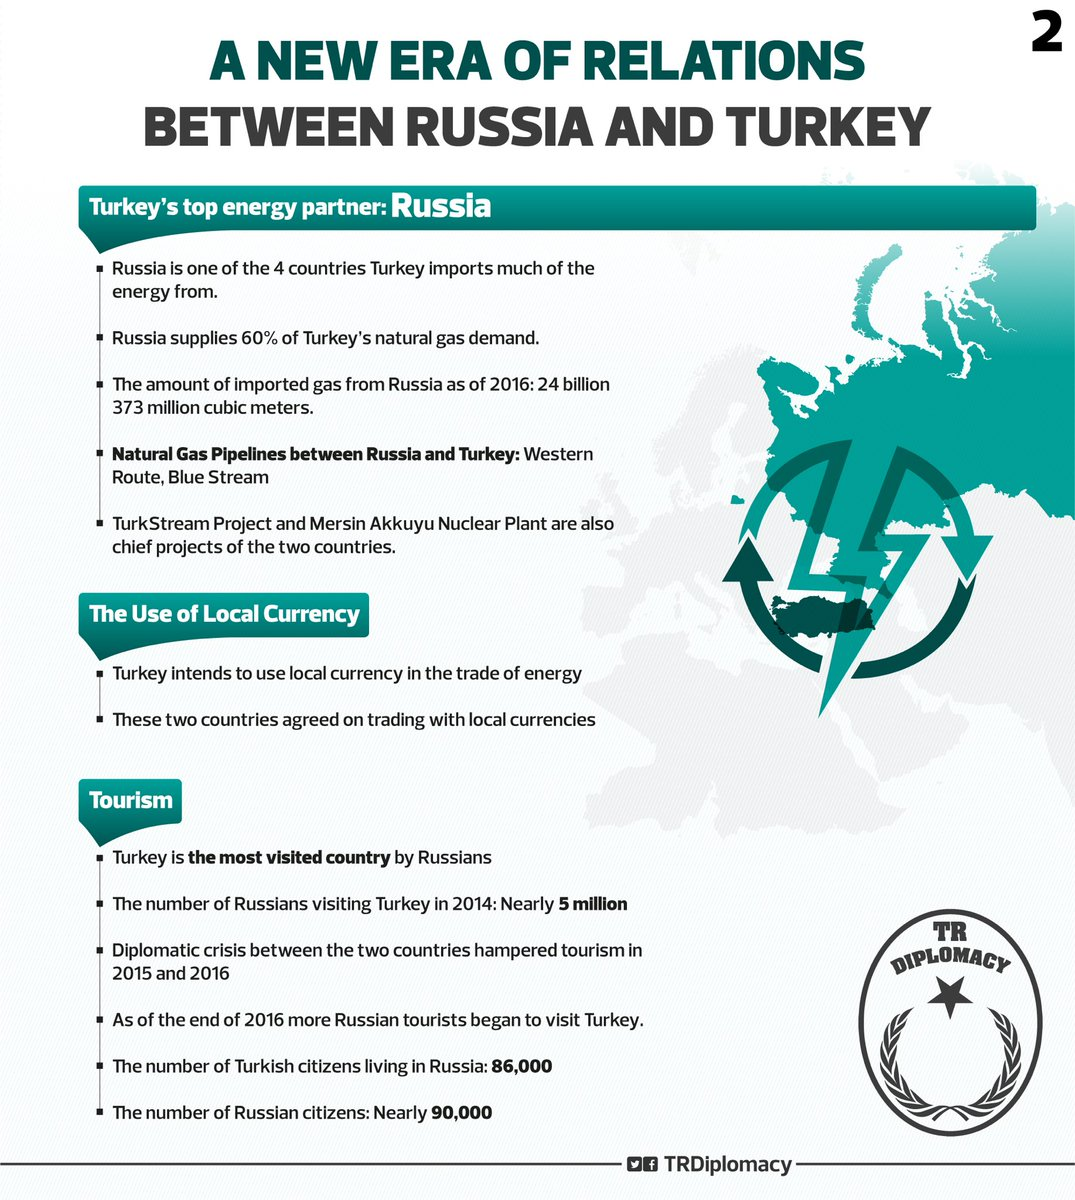 A new era of relations between Turkey and Russia